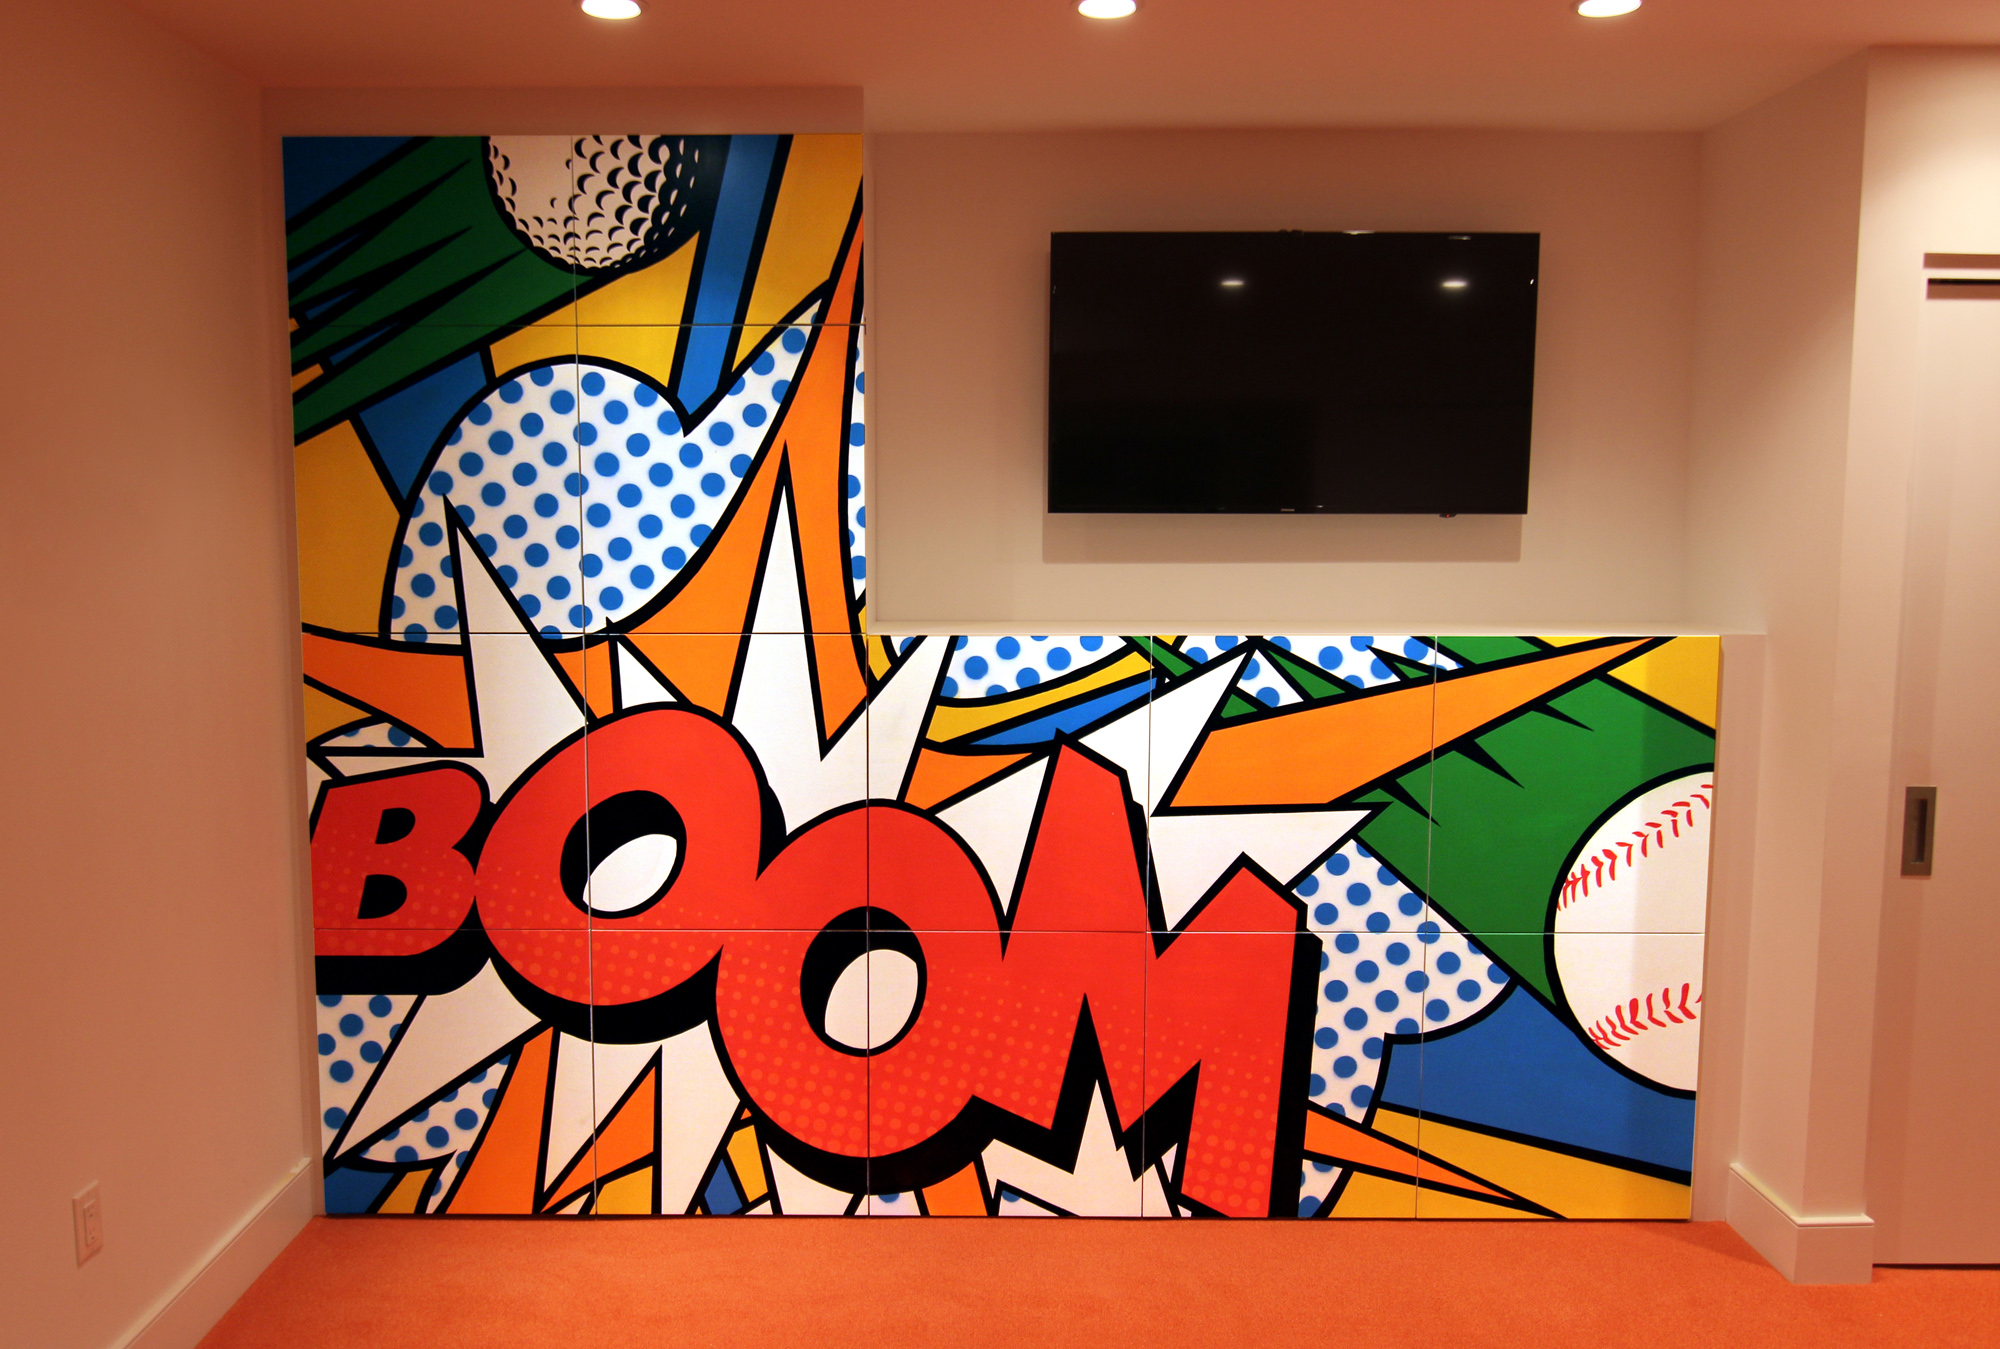 Baseball Wall Mural Pop Art Mural Your Custom Mural Specialists